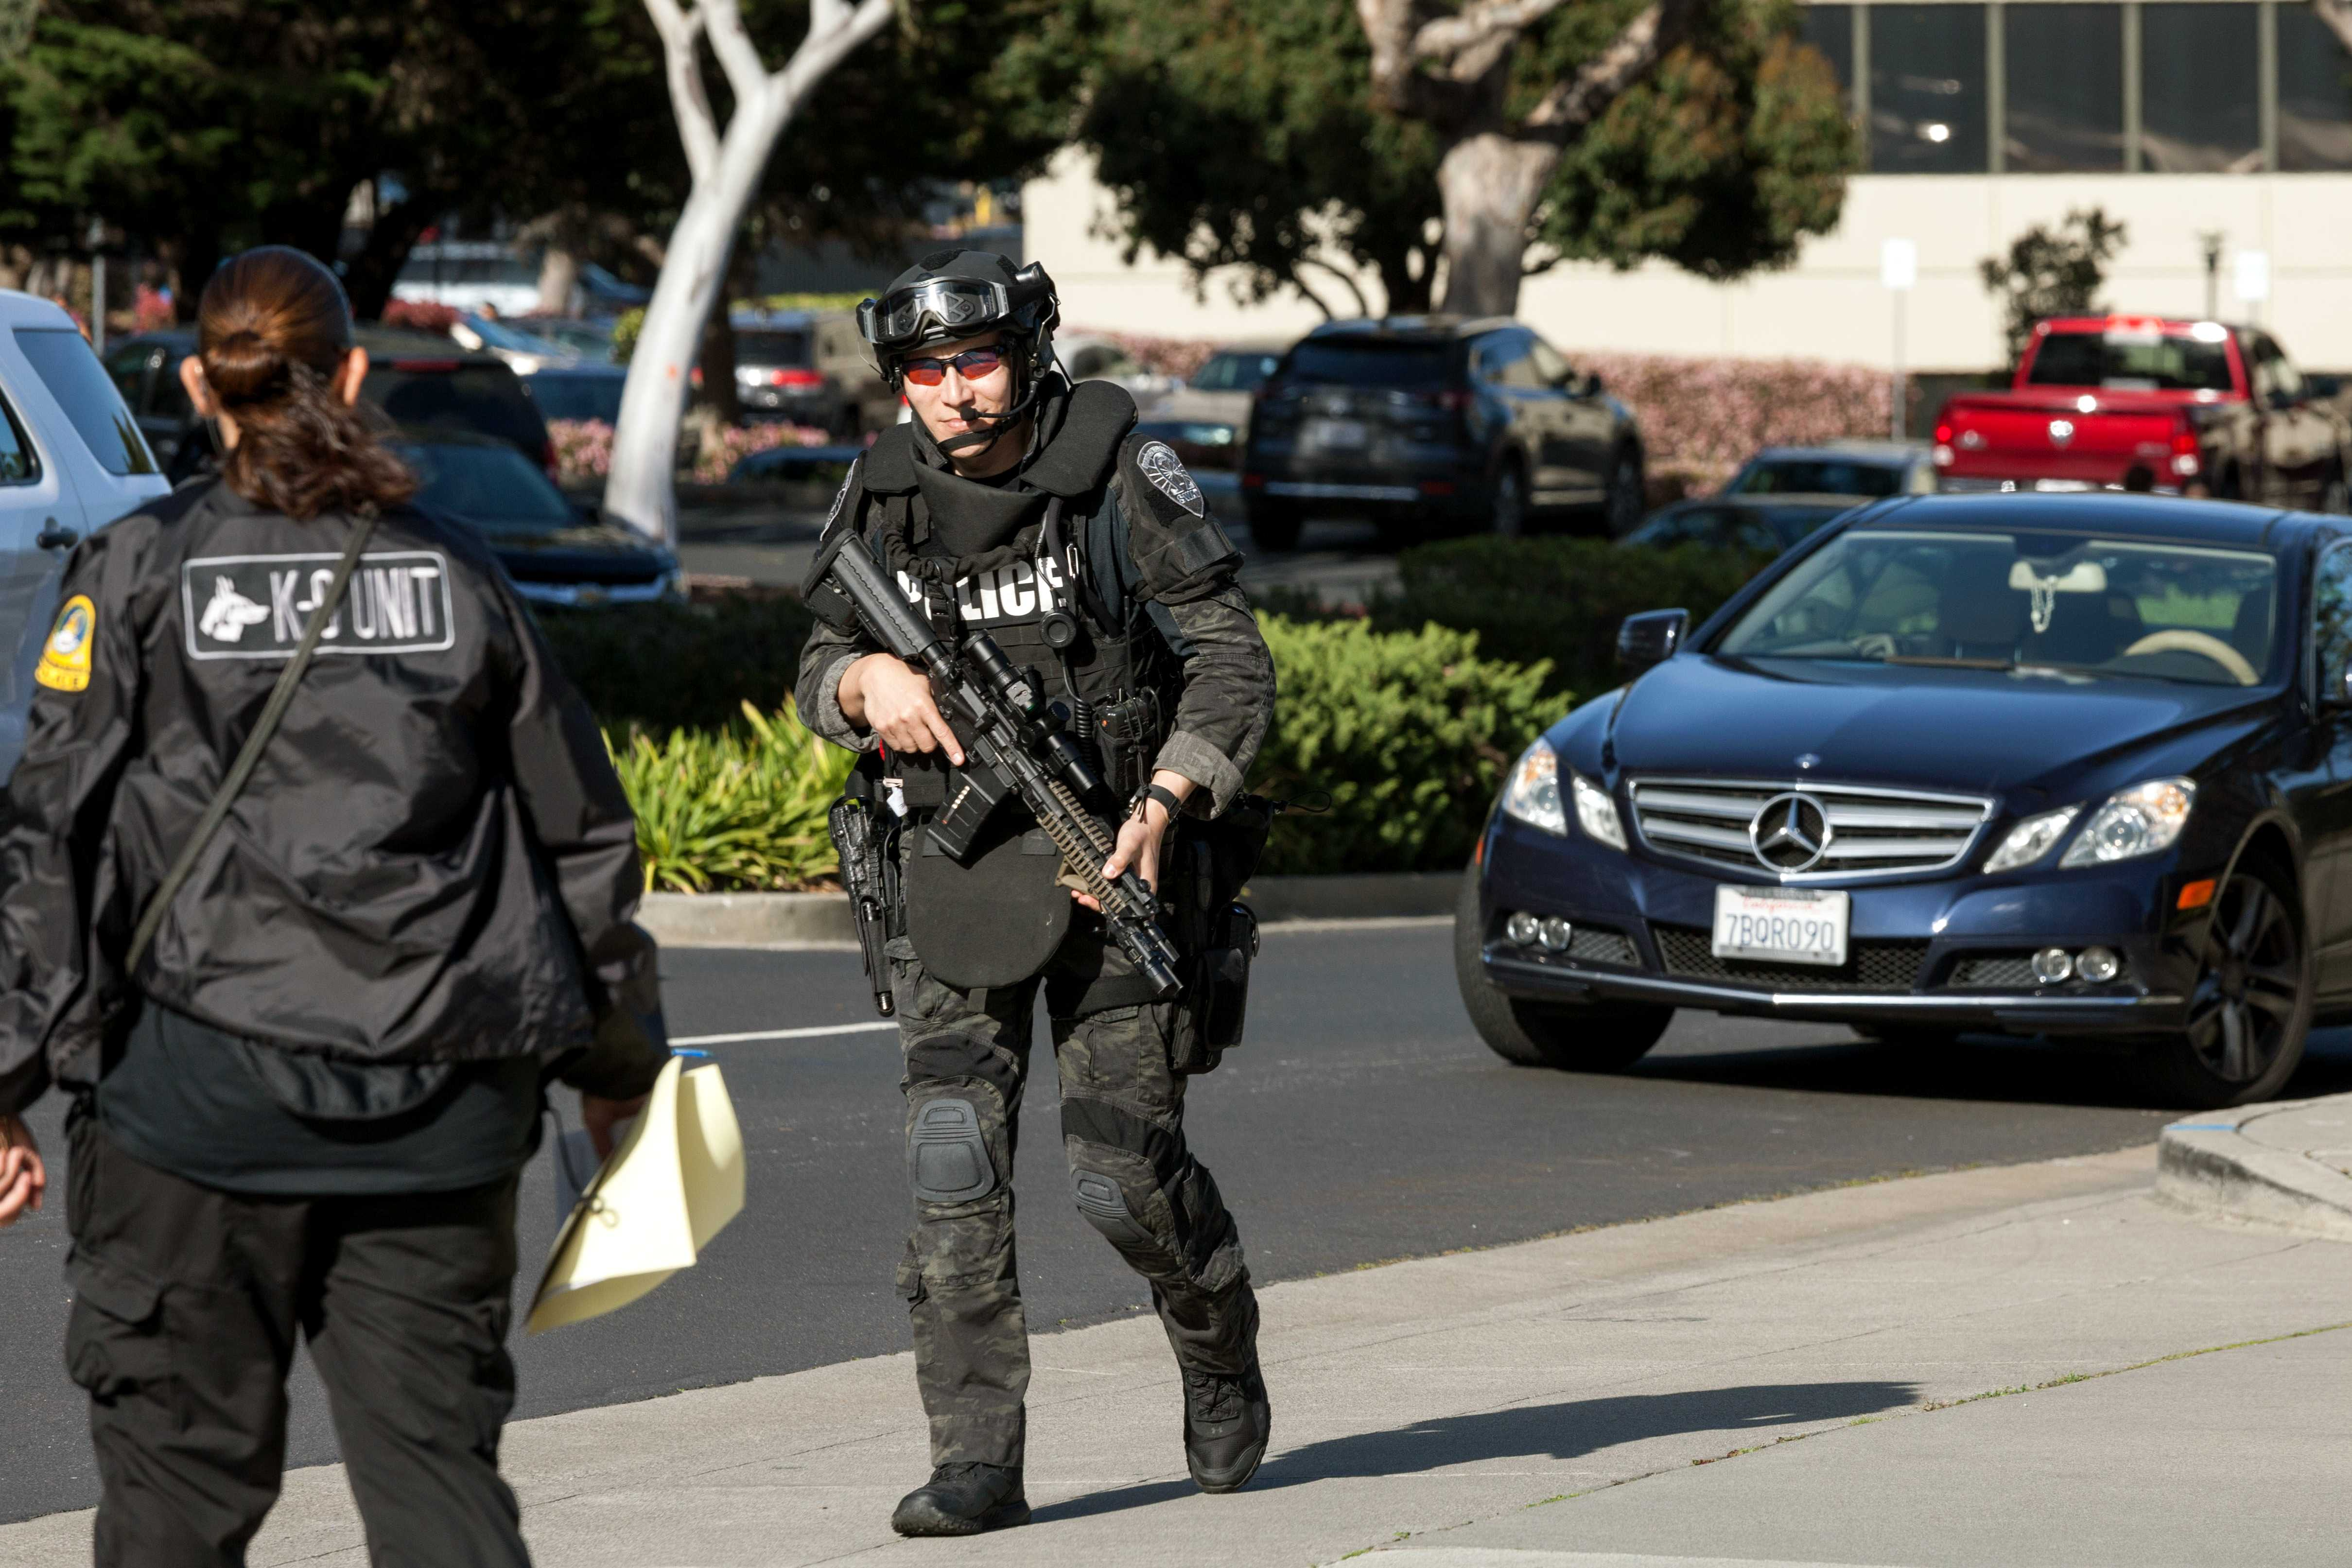 Armed officers present after the shooting incident at YouTube headquarters in San Bruno, Calif. (Photo by Garrick Wong)